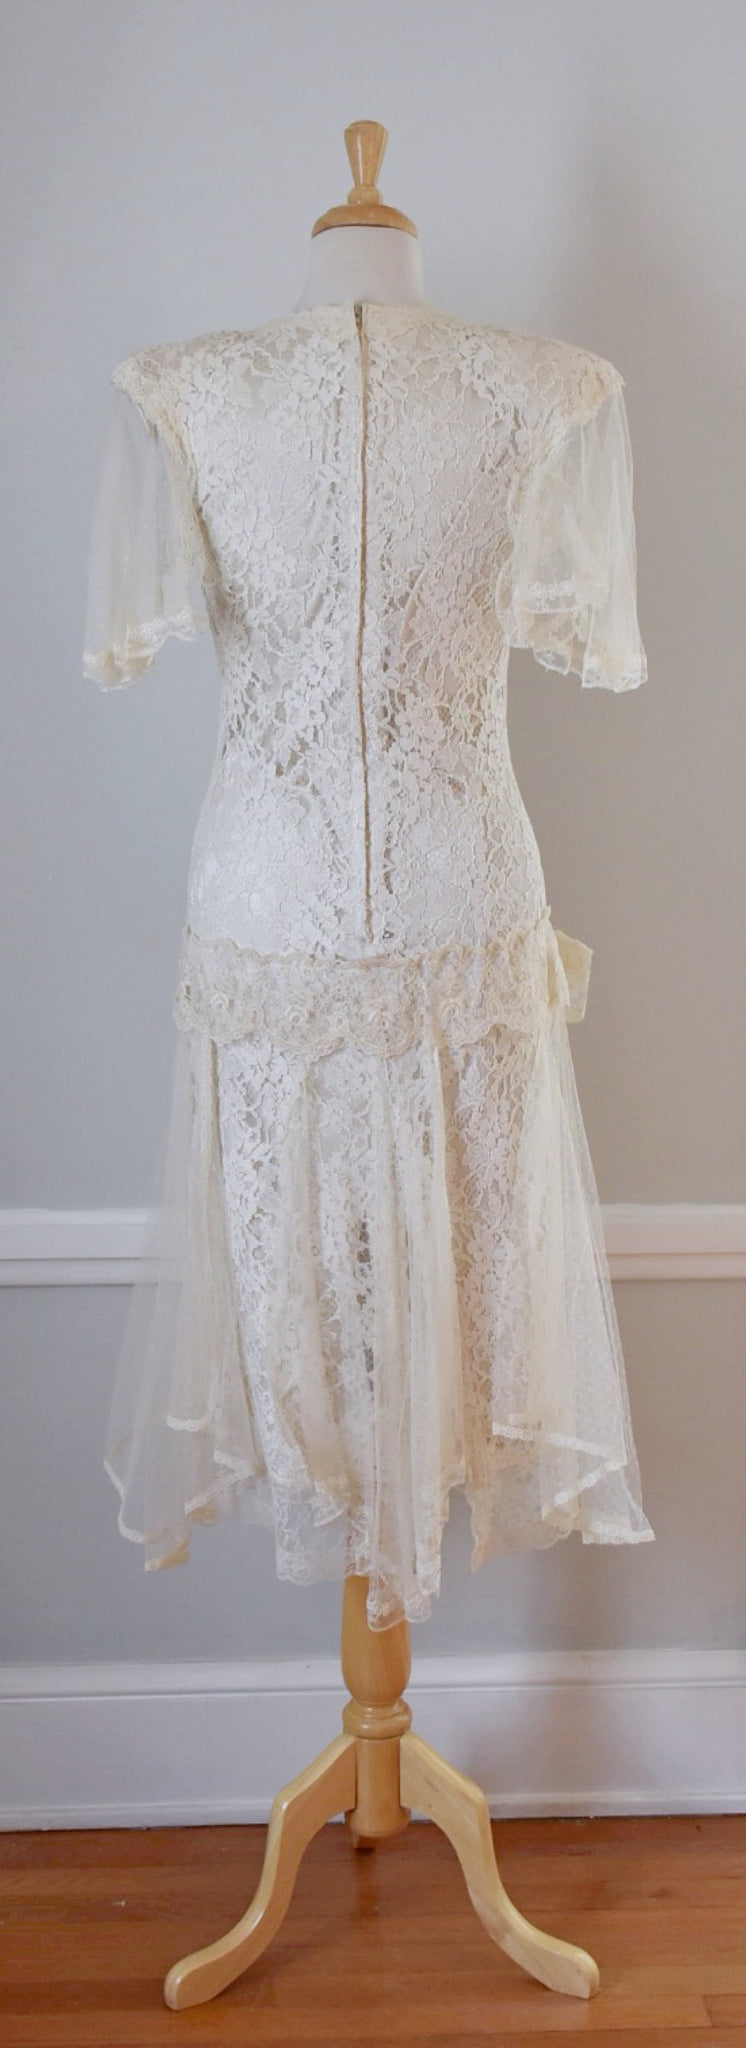 80s Vintage Upcycled Lace Bridal Dress